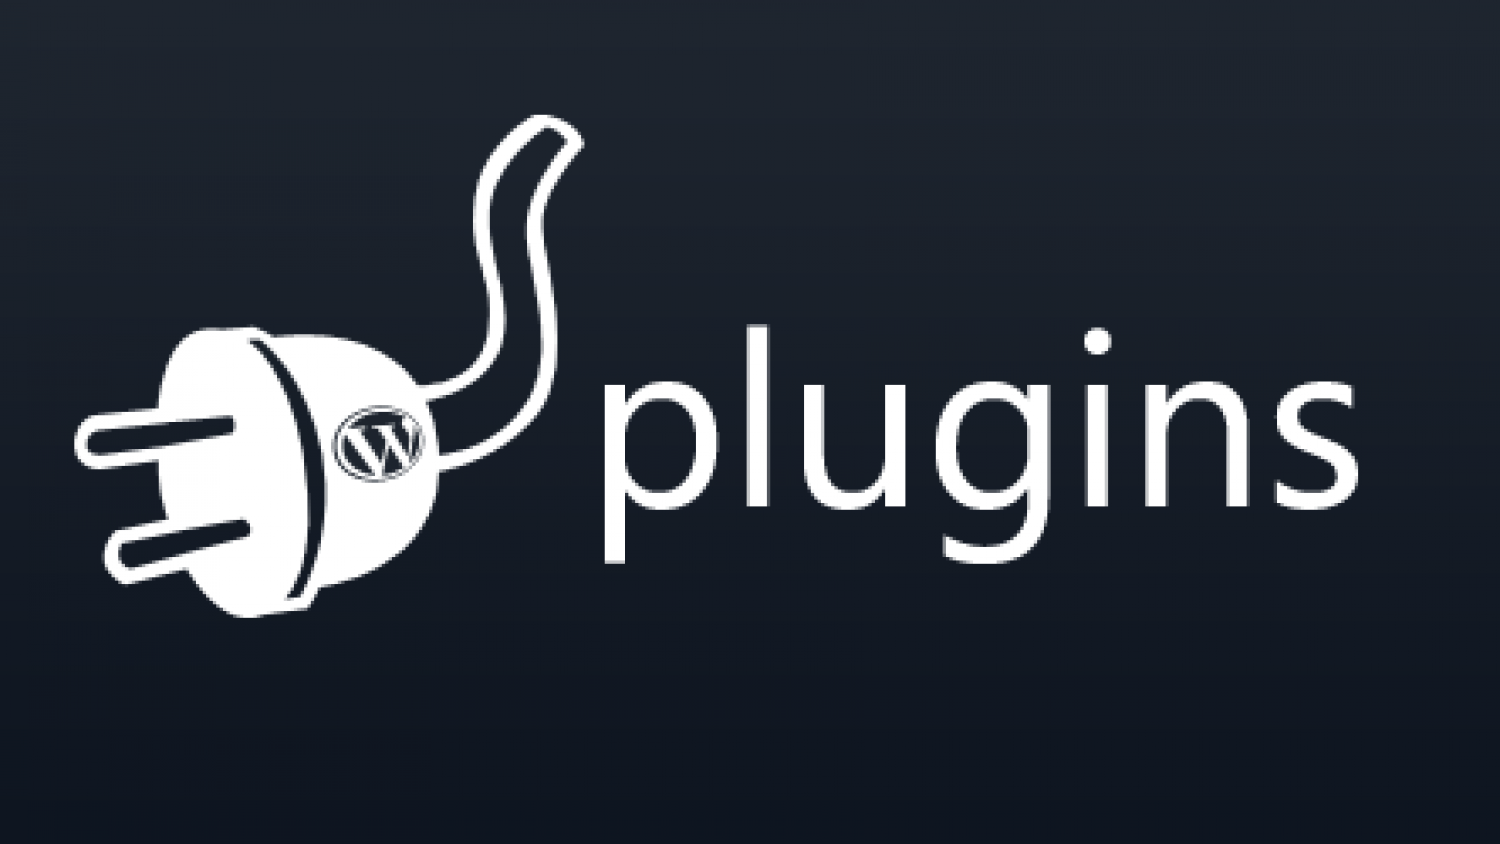 11 Browser Plugins I Use For SEO Every Day!